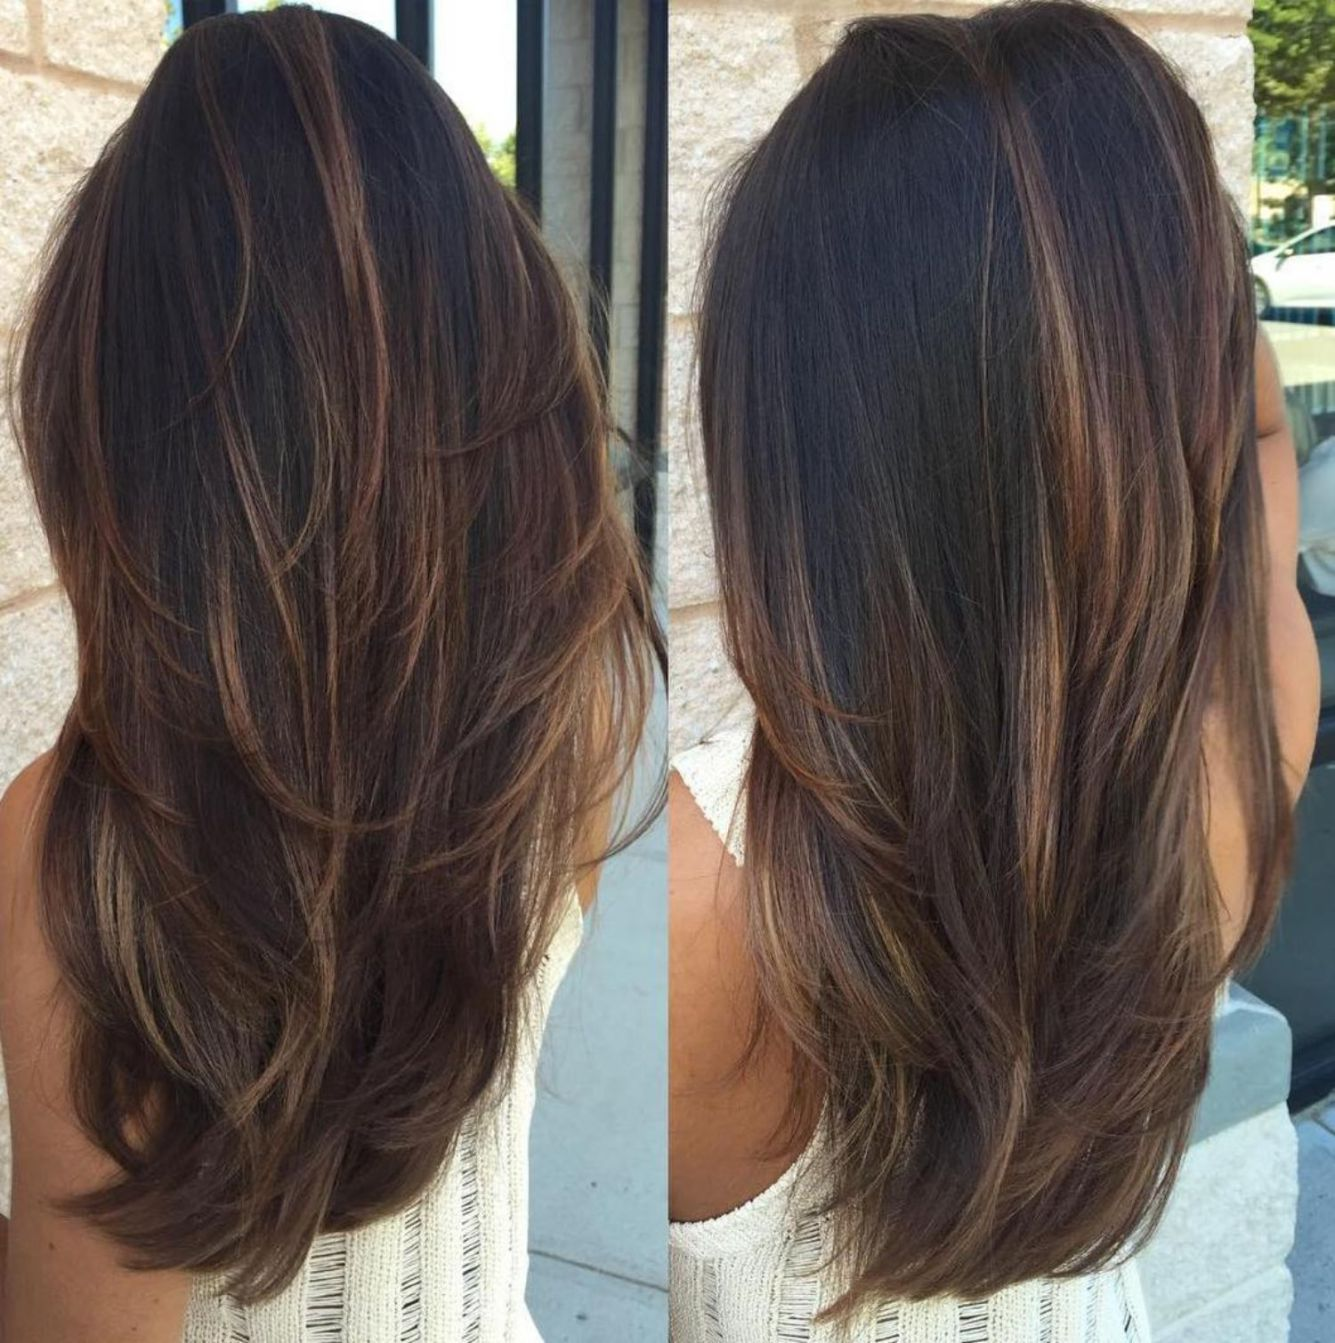 Cute Layered Hairstyles and Cuts for Long Hair in   Beauty